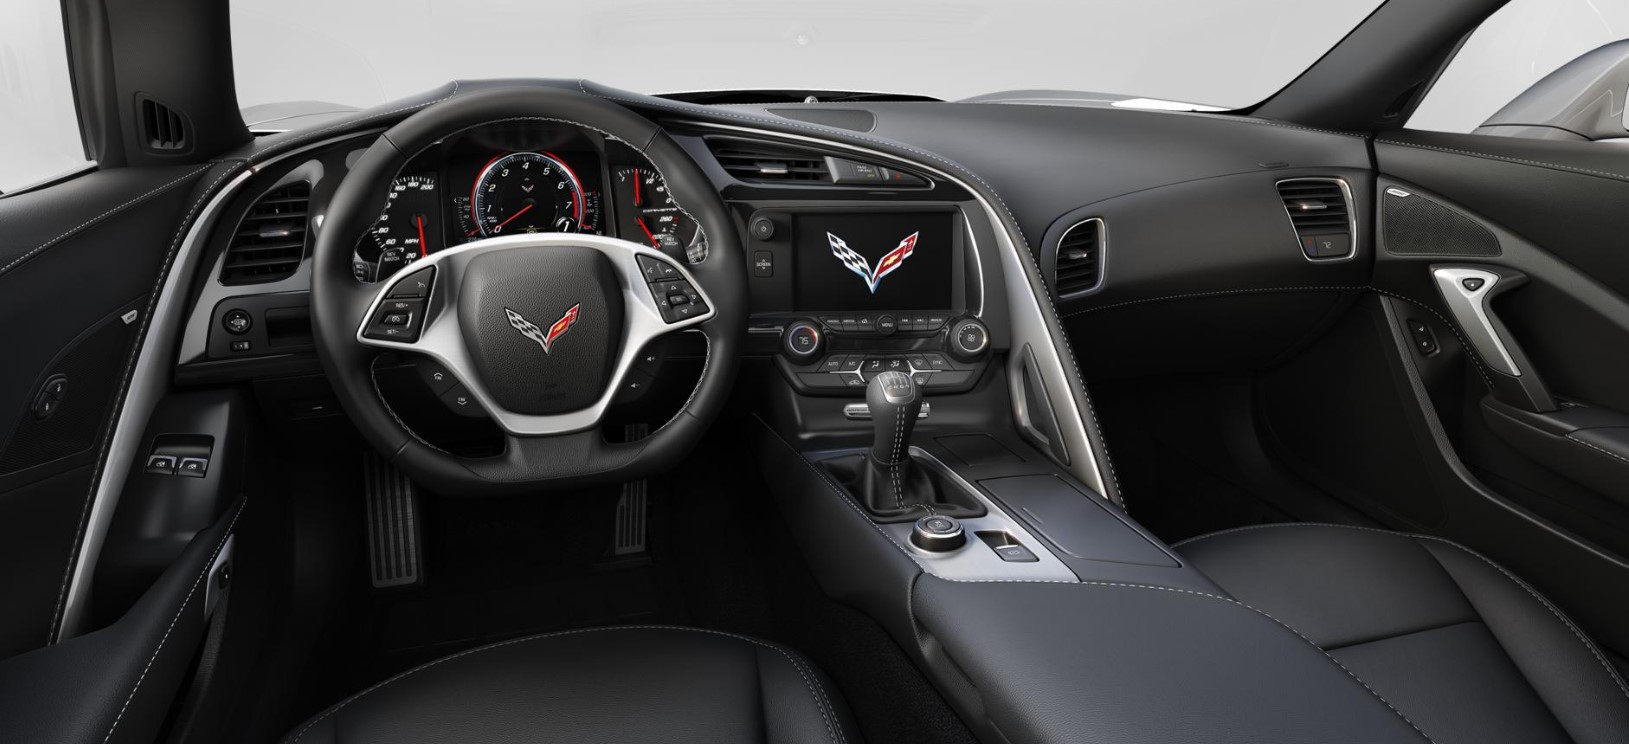 2018 Chevrolet Corvette Grand Sport Black Leather Interior